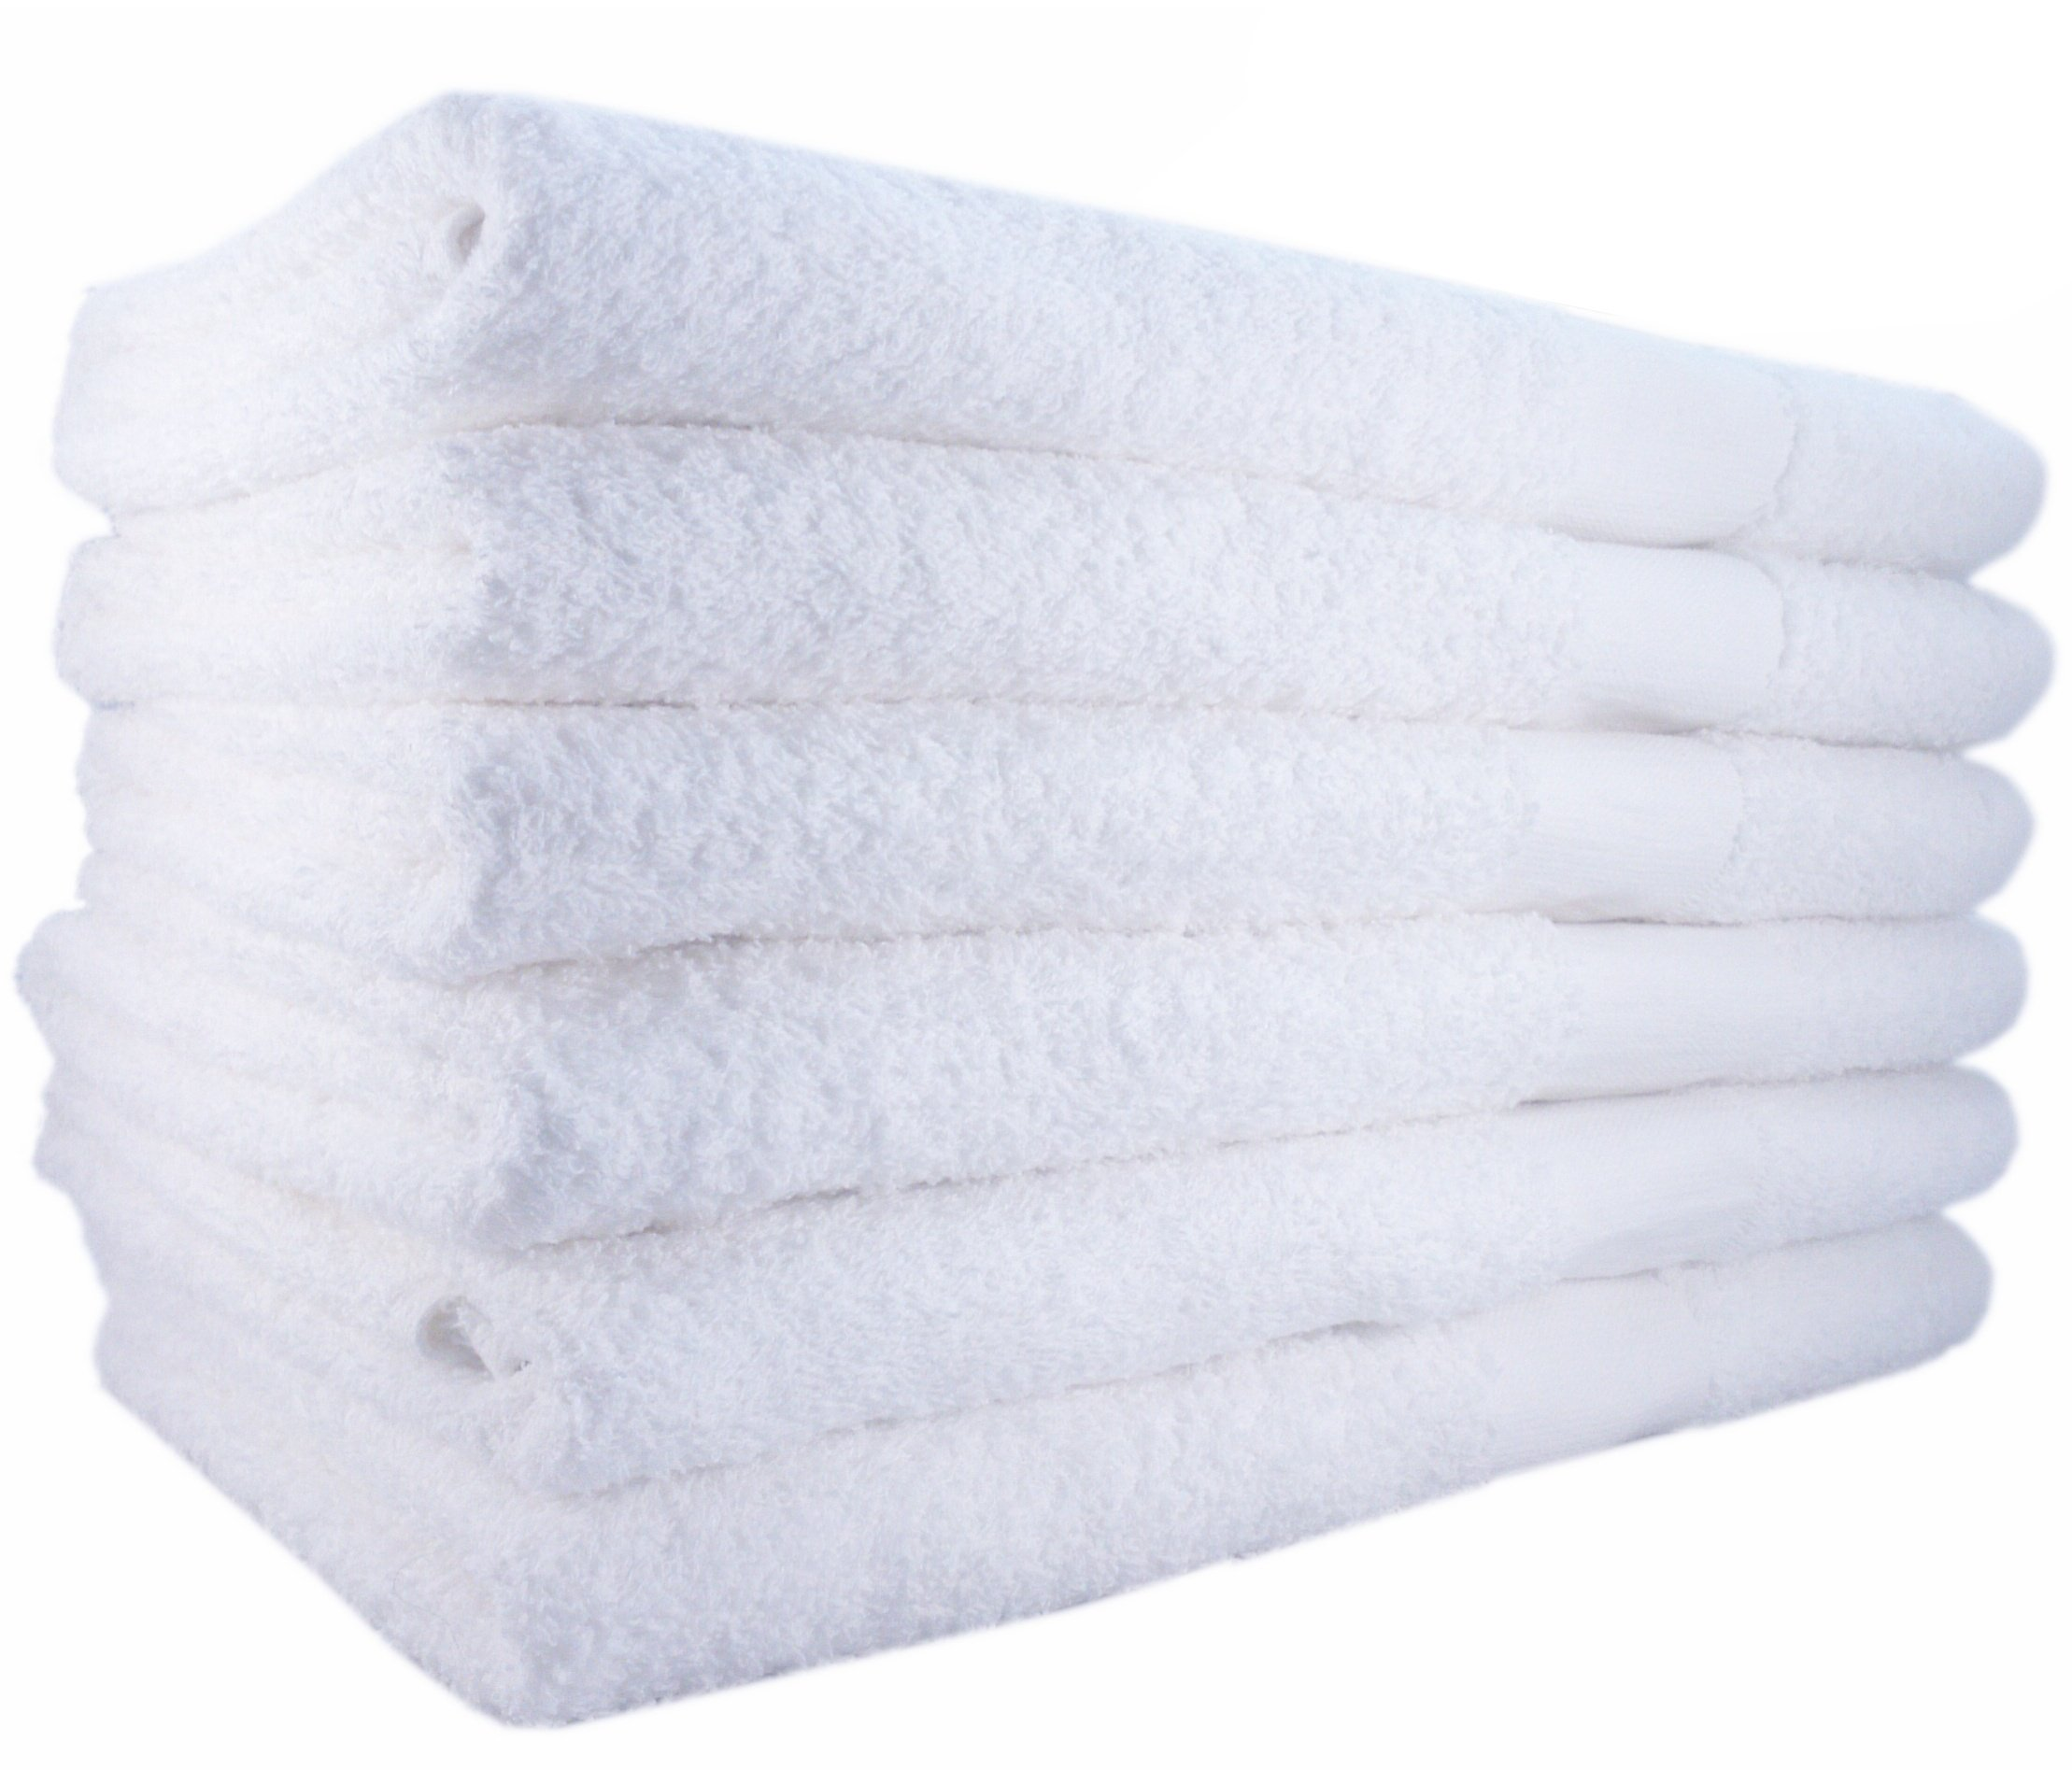 Hotel-Spa-Pool-Gym Cotton Hair & Bath Towel - 12 Pack, White, Super Soft, Easy Care, Ringspun Cotton for Maximum Softness and Absorbency (24 x 48 Inch) - by Utopia Towel